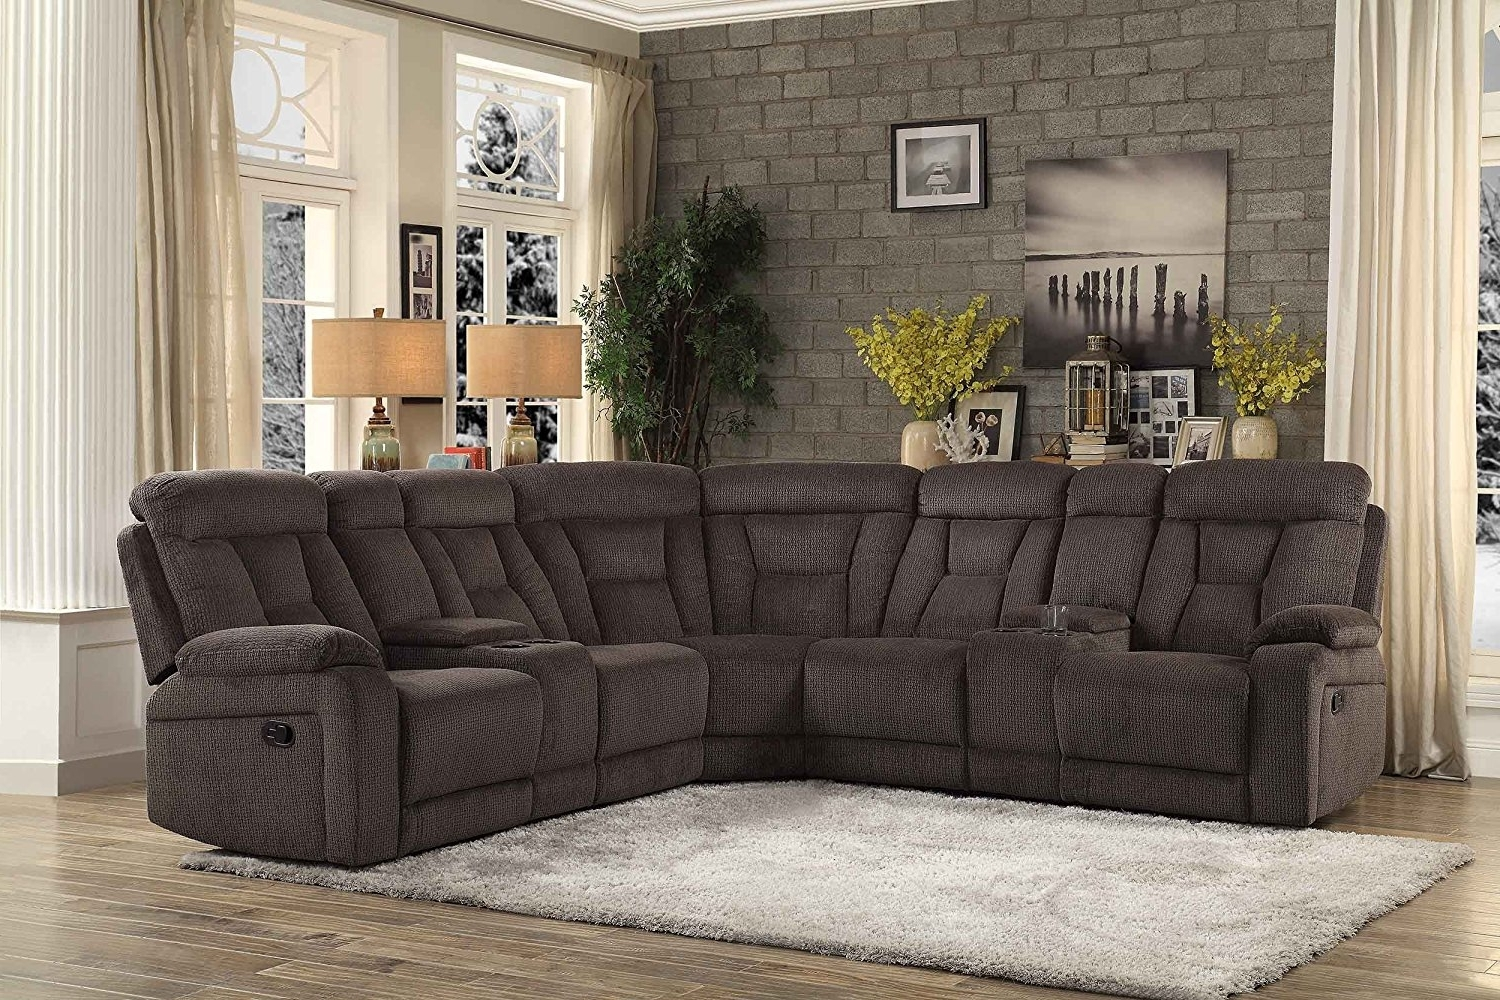 Elk Grove Ca Sectional Sofas Regarding Preferred Discount Sectional Sofa (View 6 of 20)